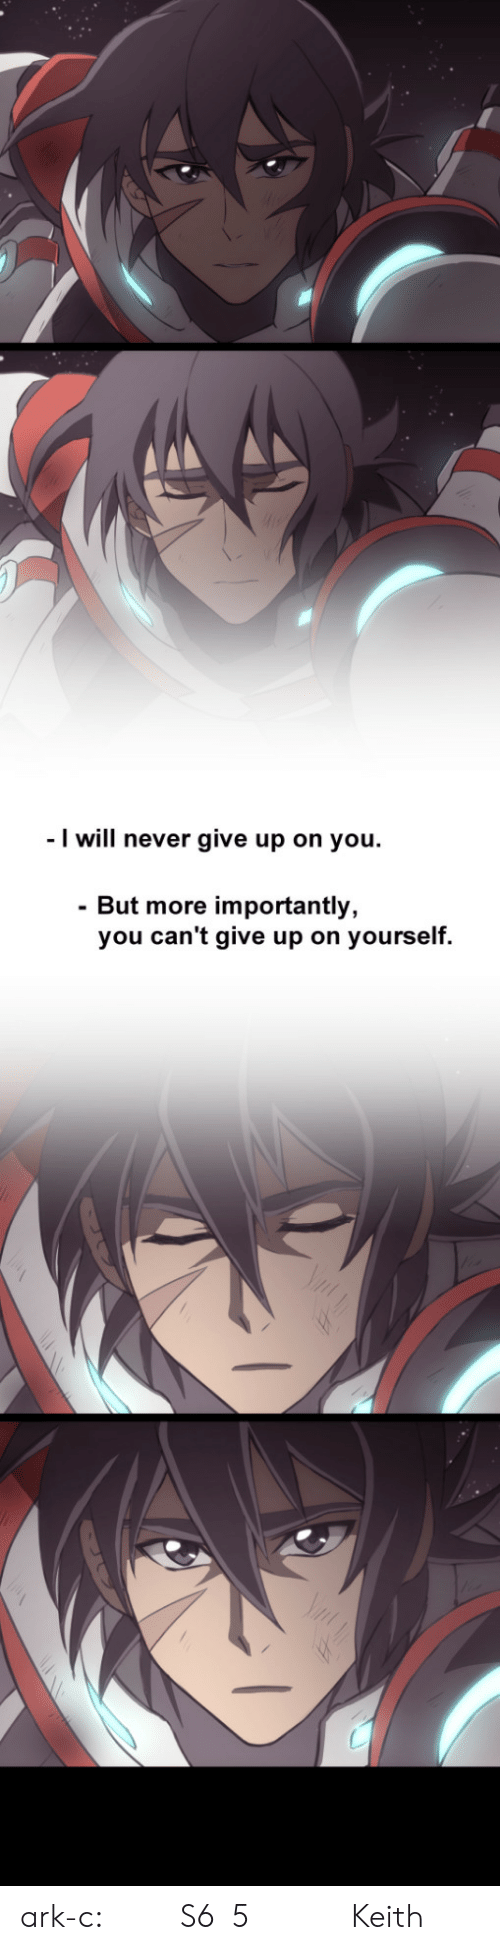 Target, Tumblr, and Blog: I will never give up on you.  - But more importantly,  you can't give up on yourself. ark-c: 我很喜歡S6第5話後面片段,Keith的表情令人印象深刻,想把他的神情與感覺畫出來。